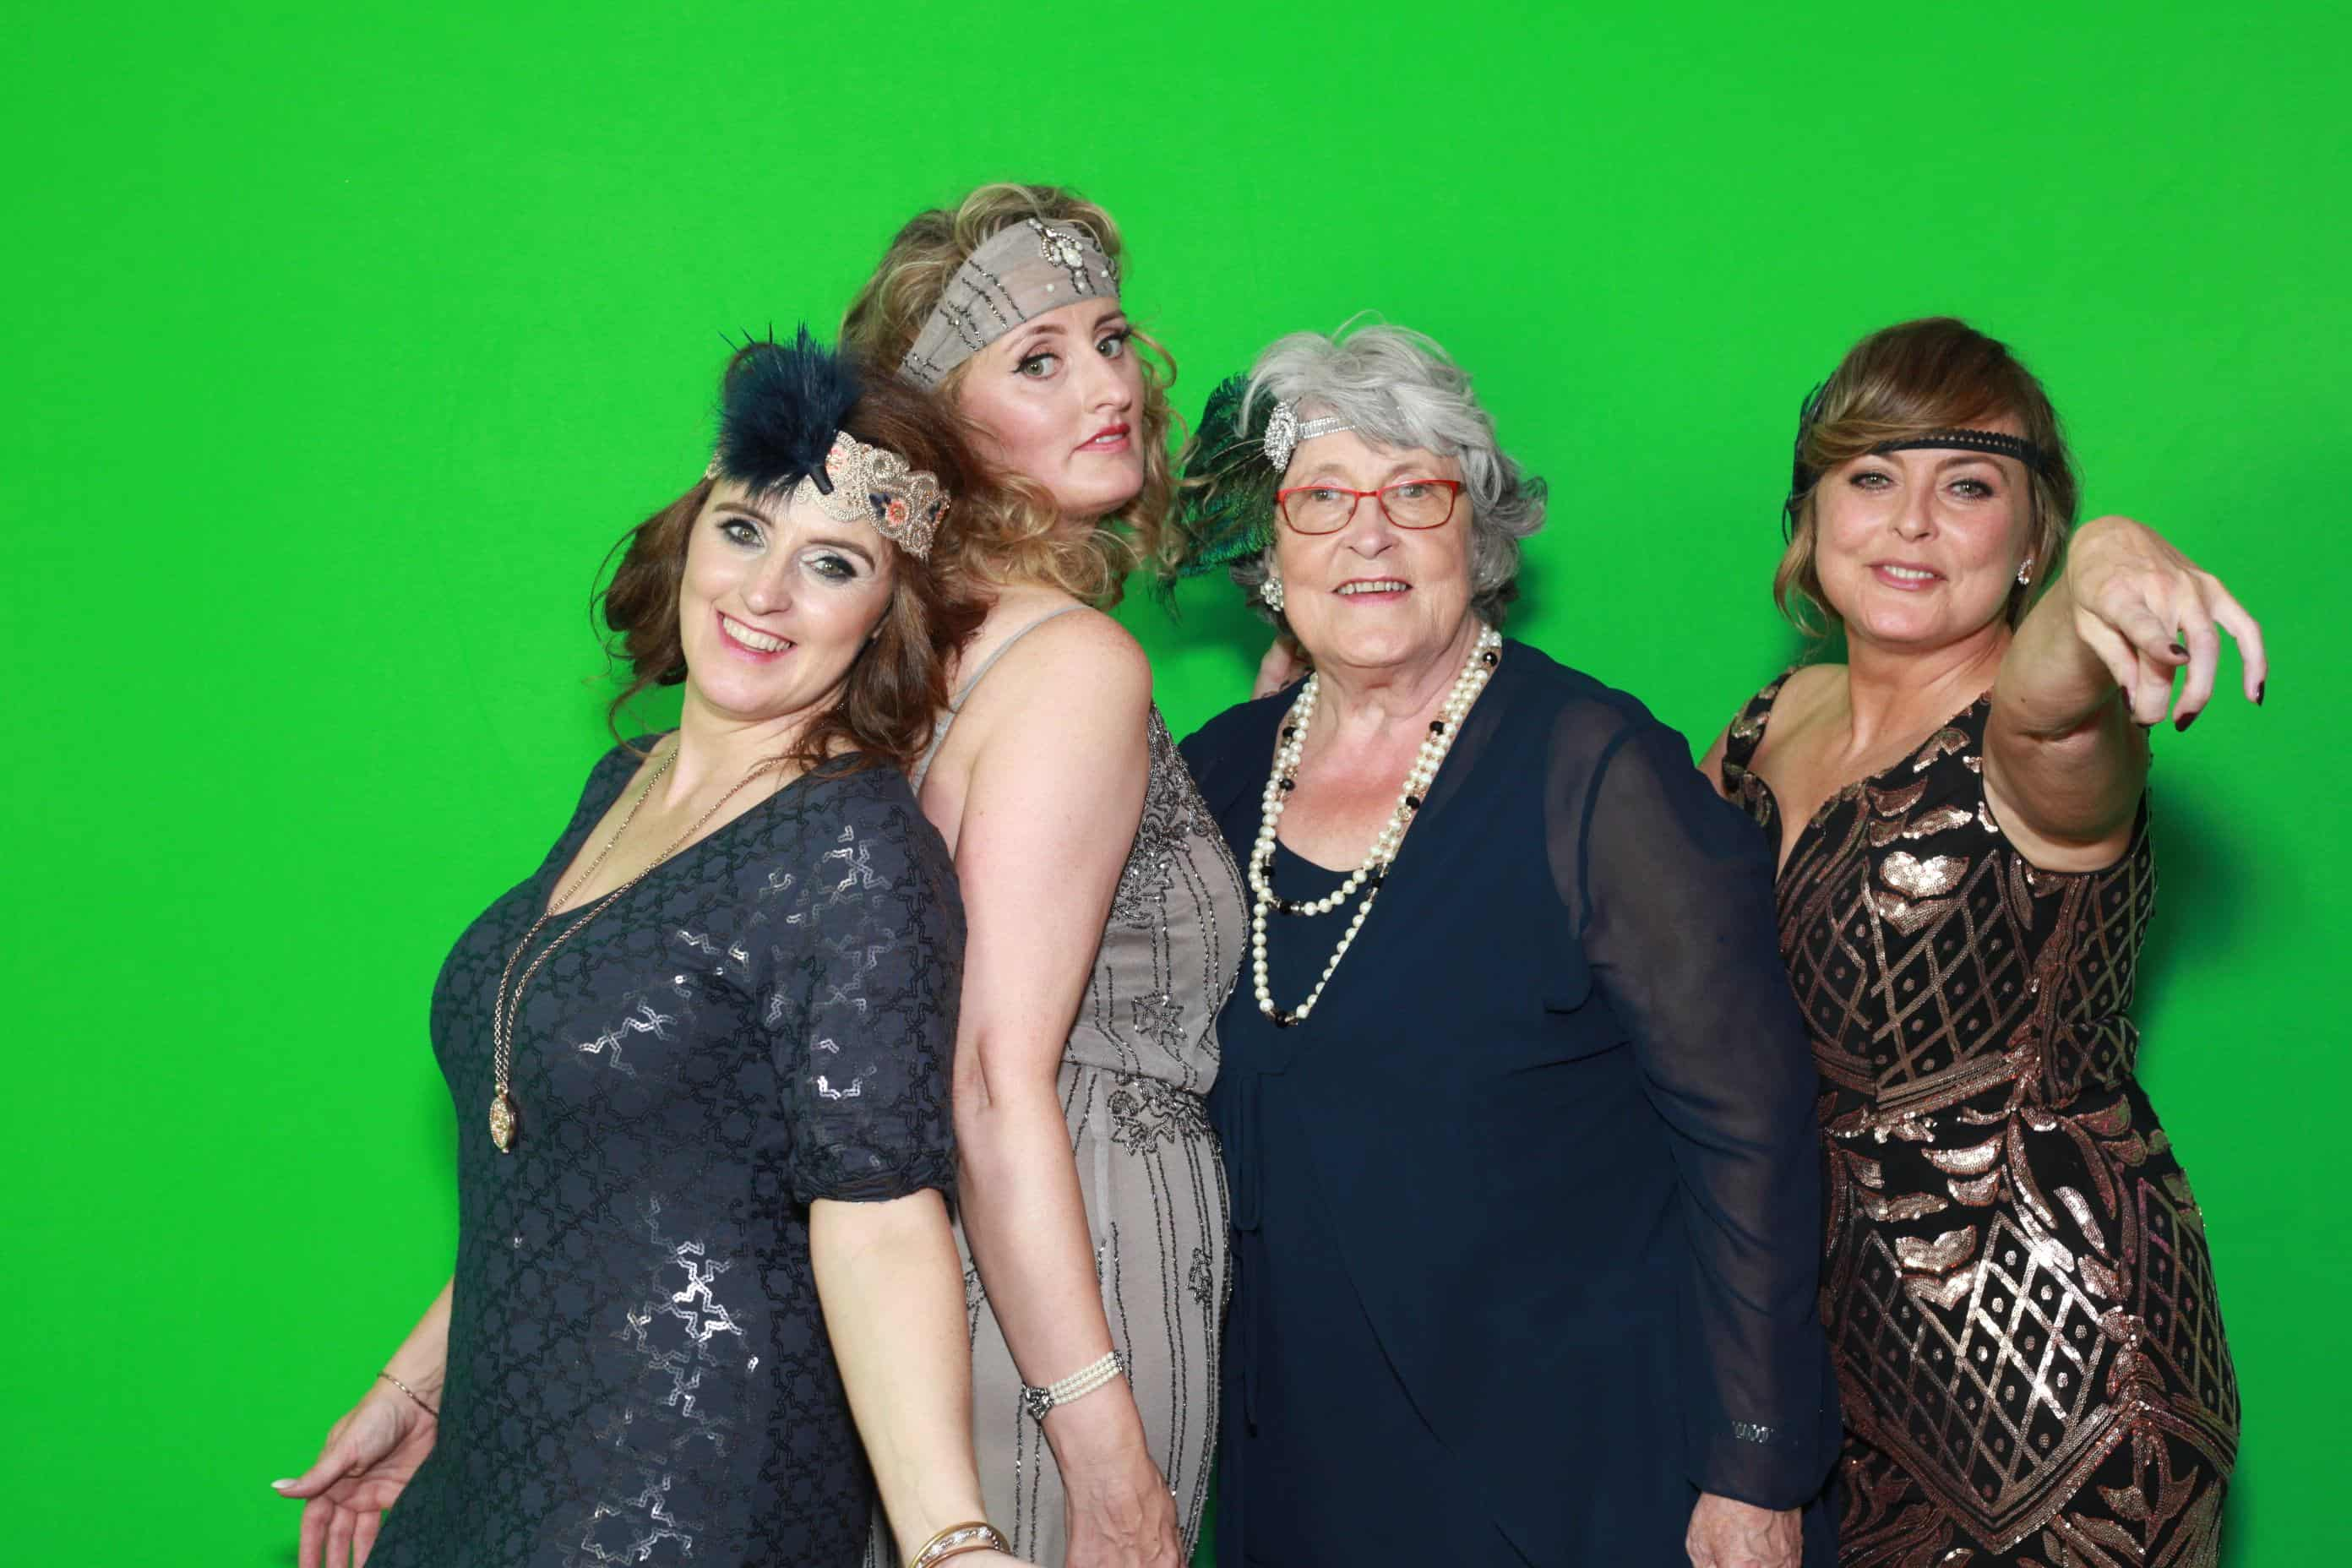 20180901 233655 324 IMG 3620 2   Greenscreen   Frans Photo Booth Services Ireland